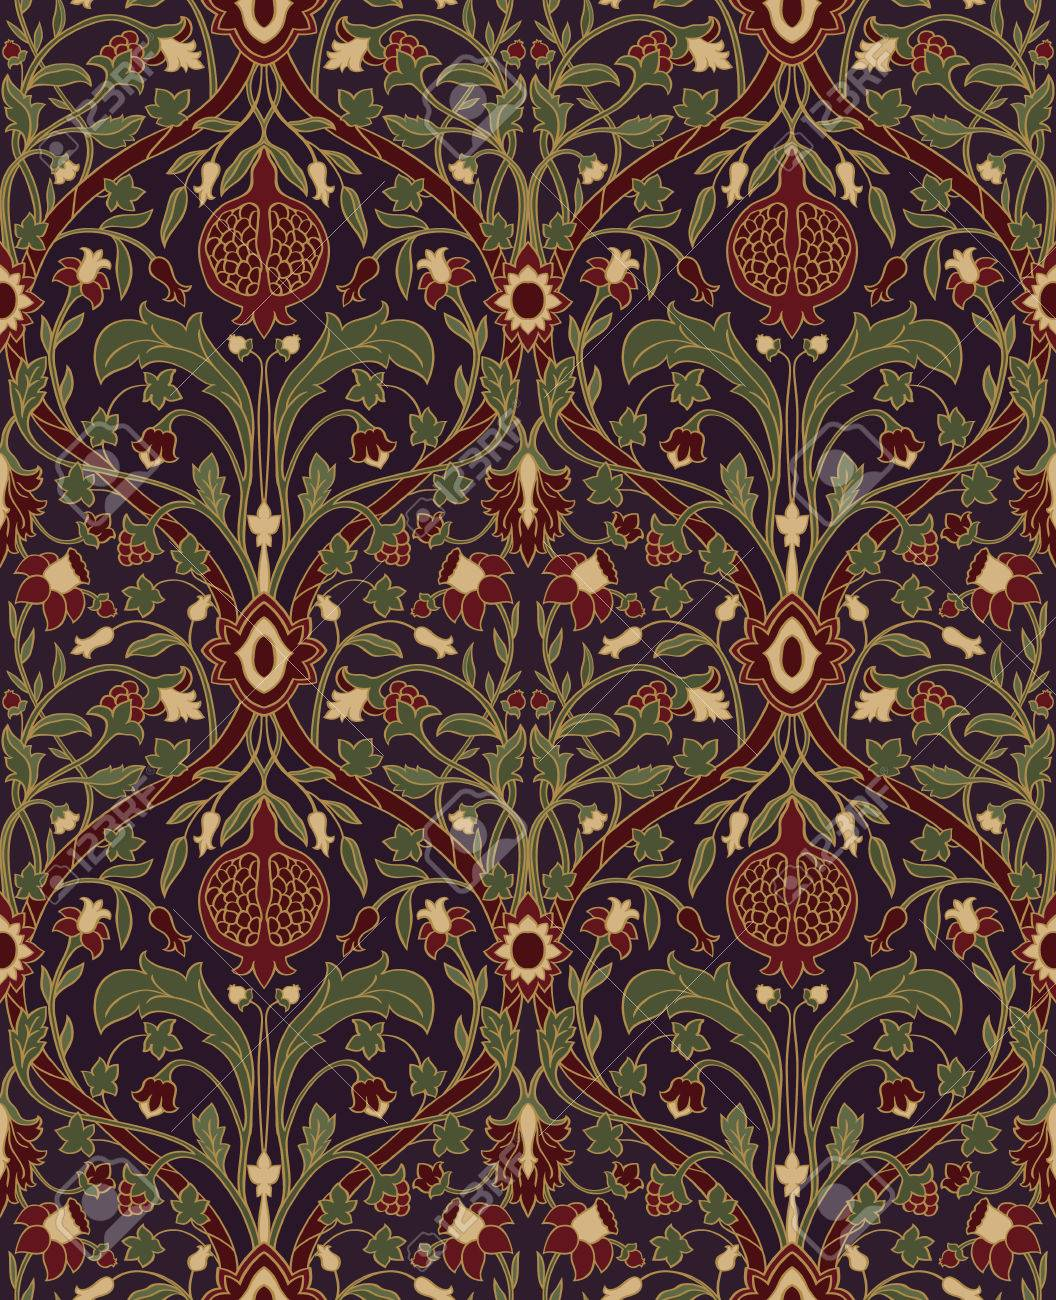 Dark Floral Pattern Seamless Rich European Ornament Of The